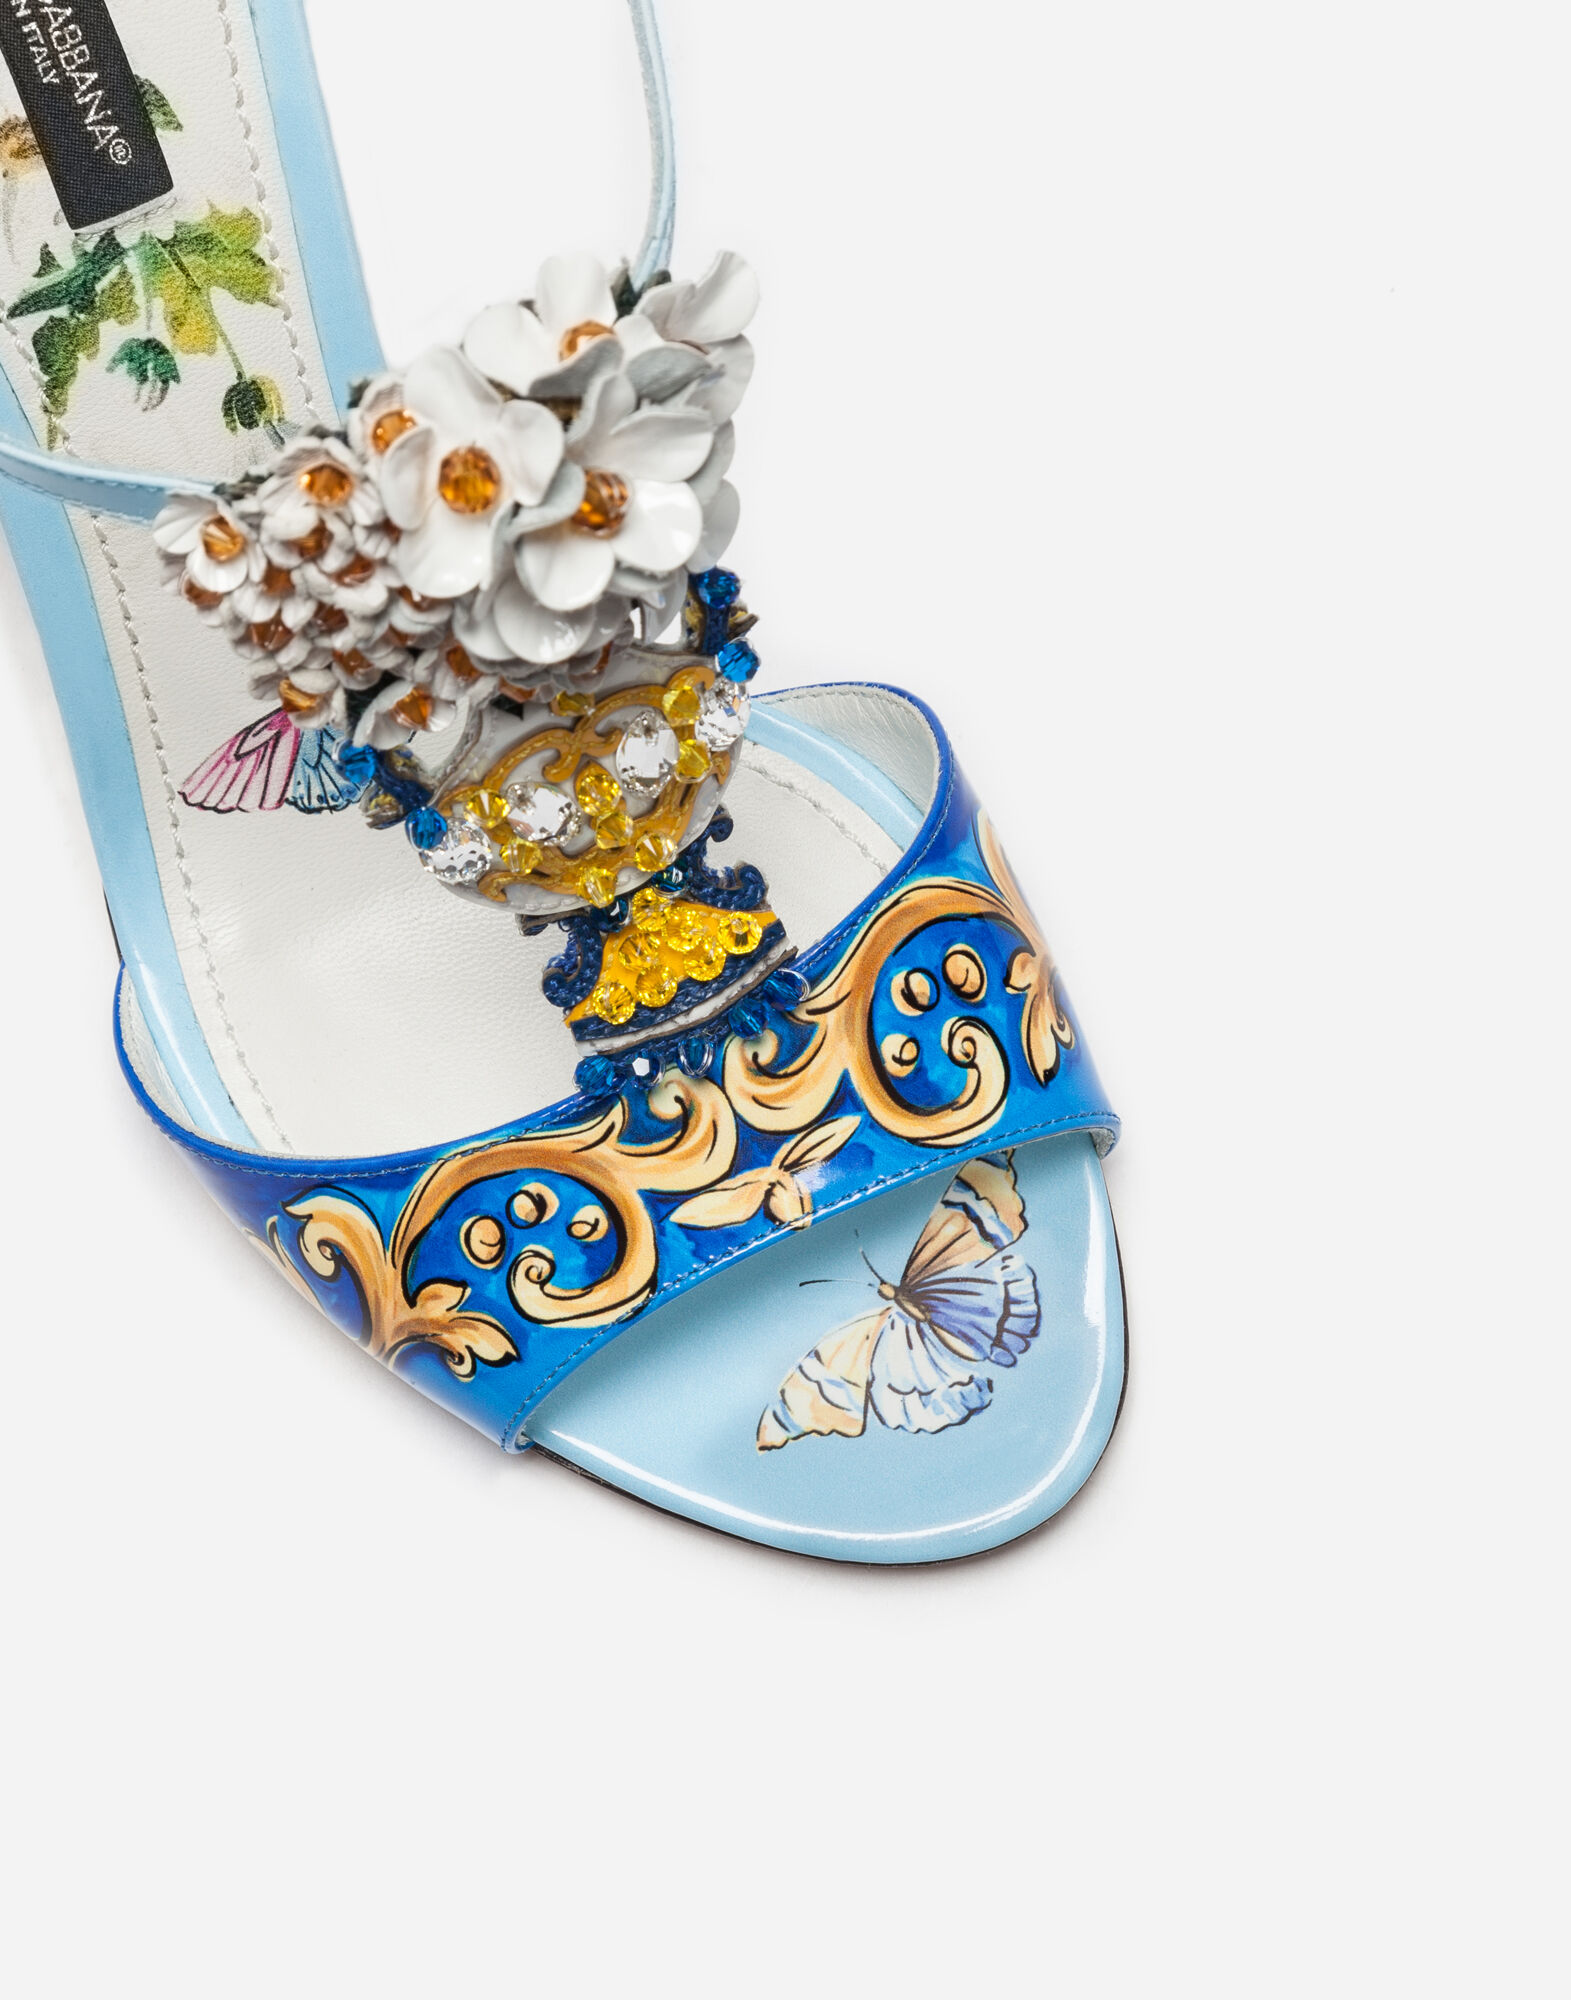 Dolce&Gabbana LEATHER SANDAL WITH BEJEWELED EMBROIDERY